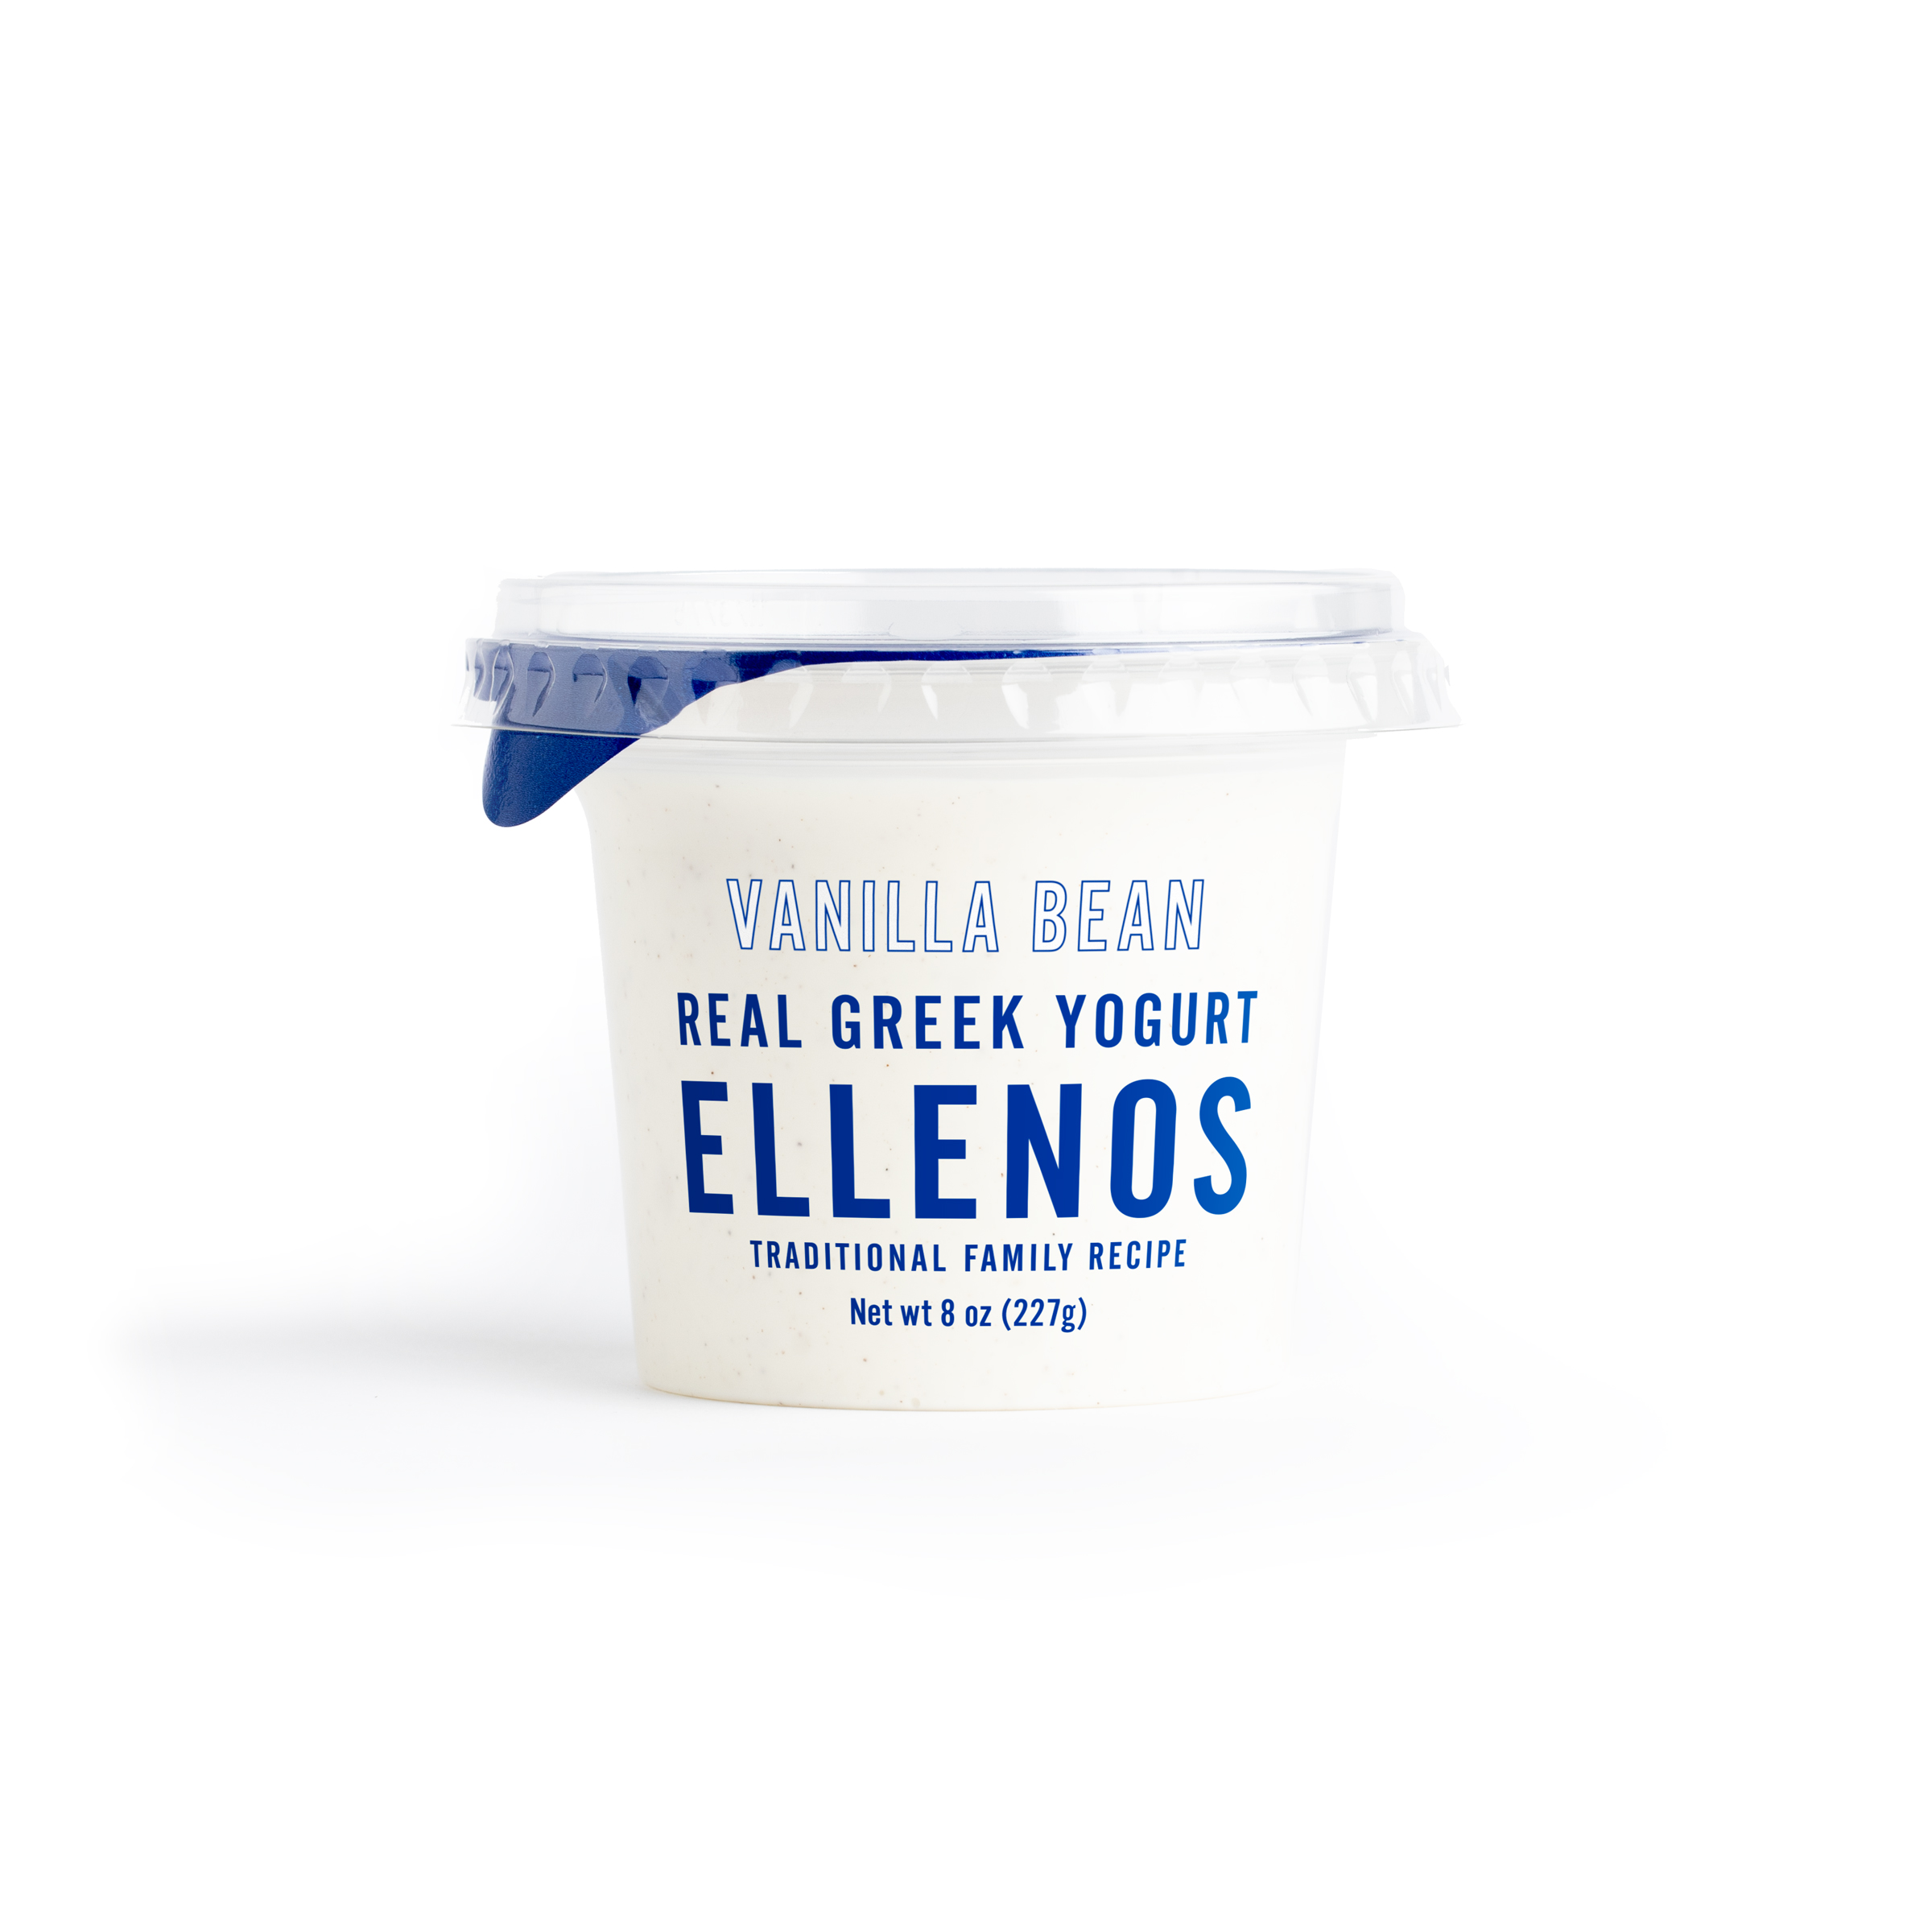 Vanilla Bean Real Greek Yogurt (8 oz), 8 oz, Ellenos | Whole